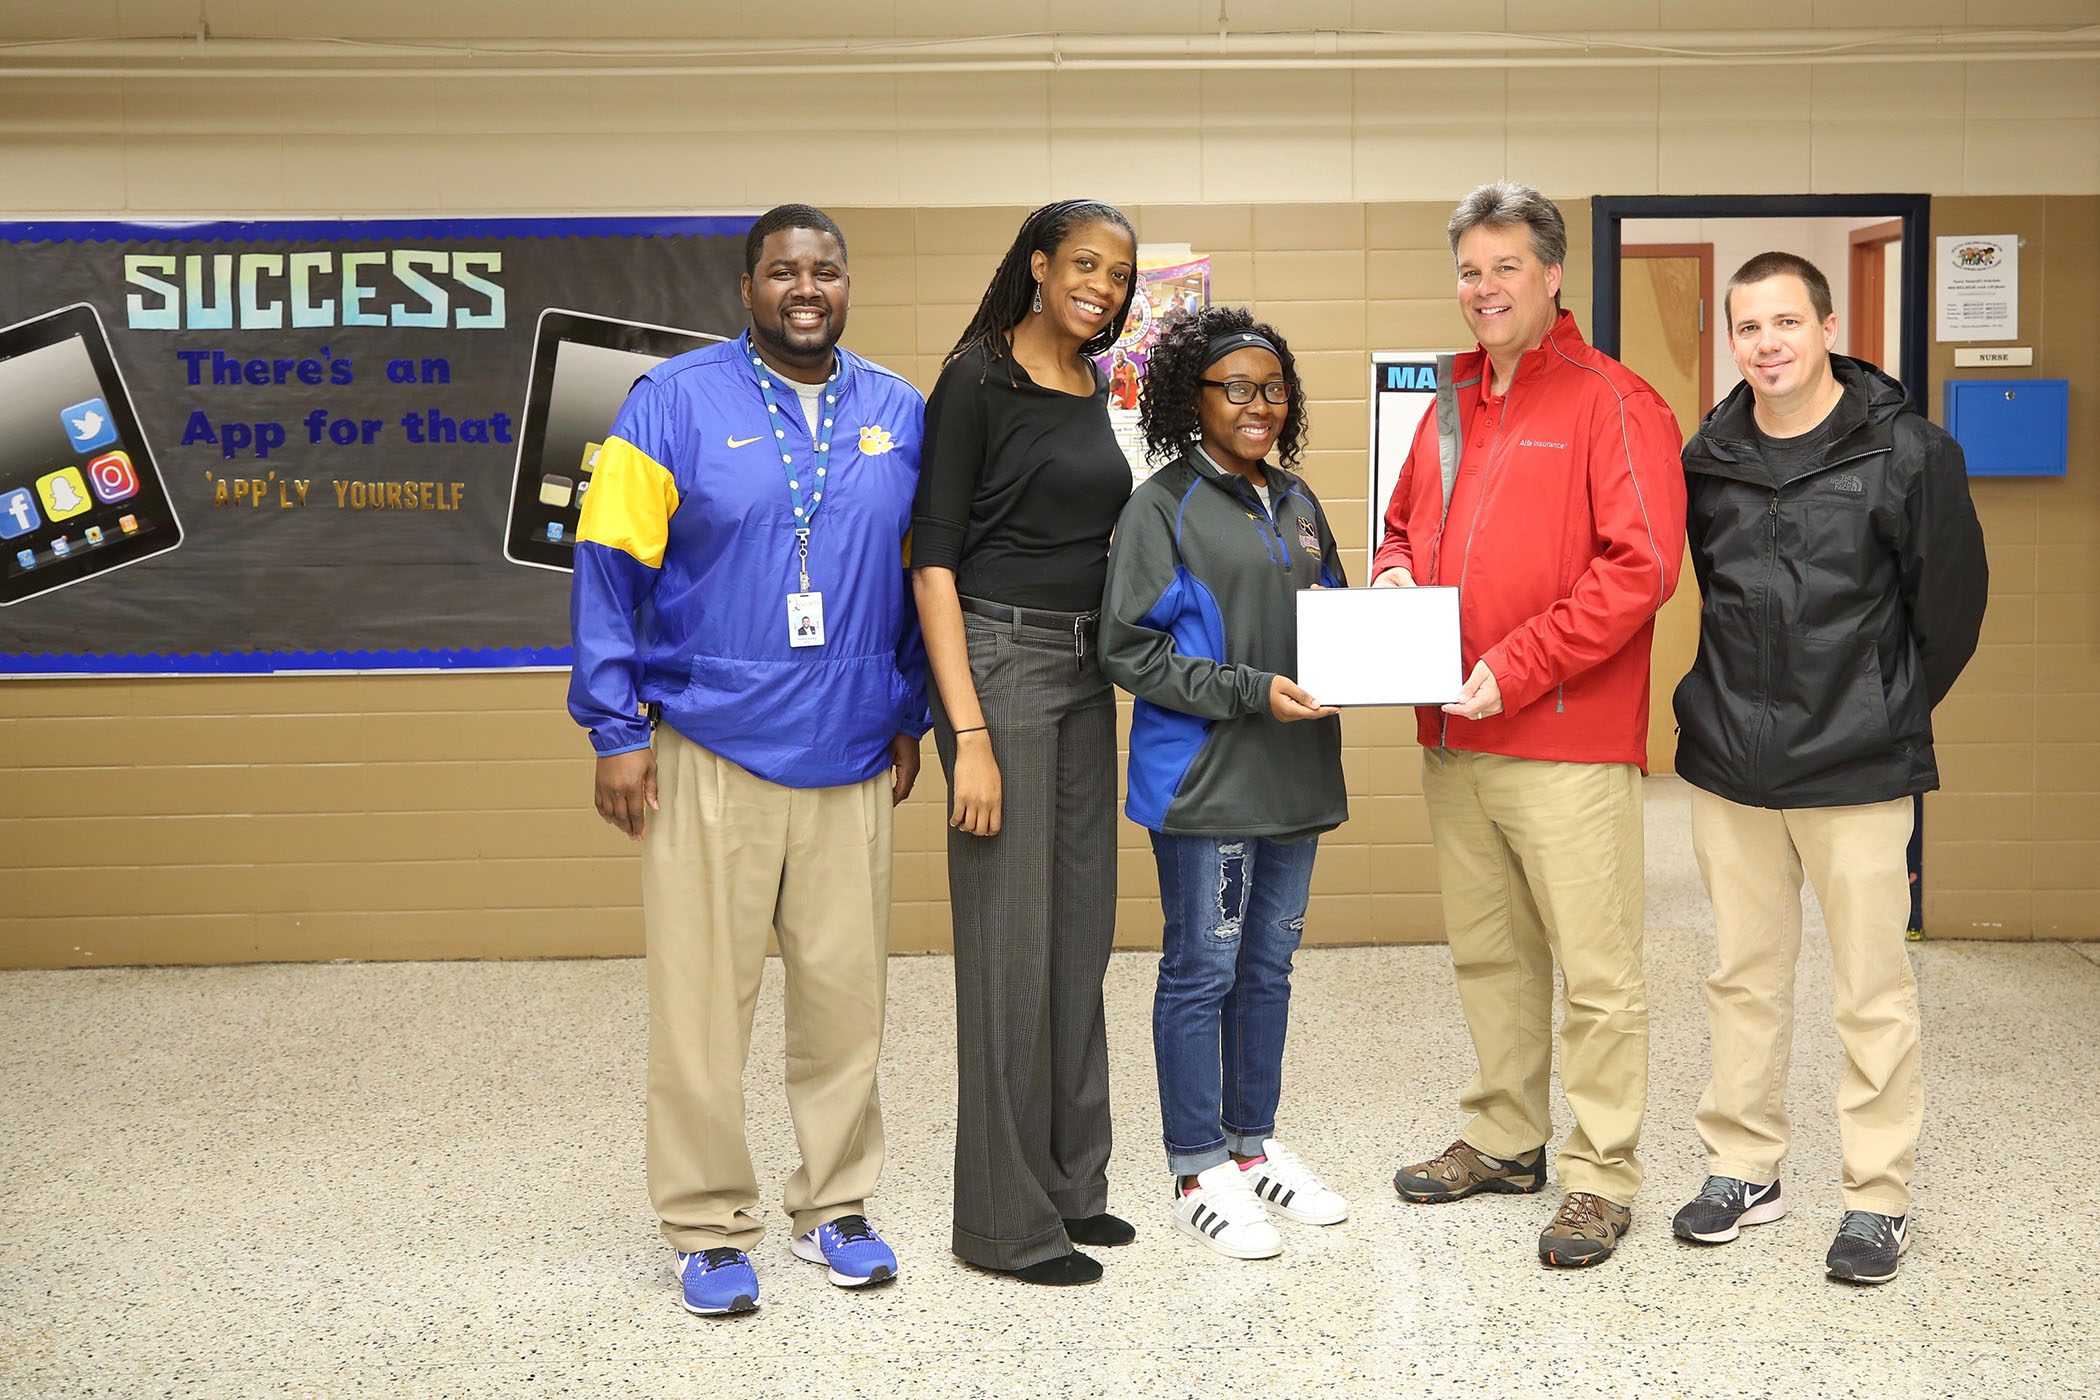 December's Alfa Insurance Athlete of the Month poses with Dr. Savage, Coach Westerfield, Dr. Hampton, and Coach Jordan.